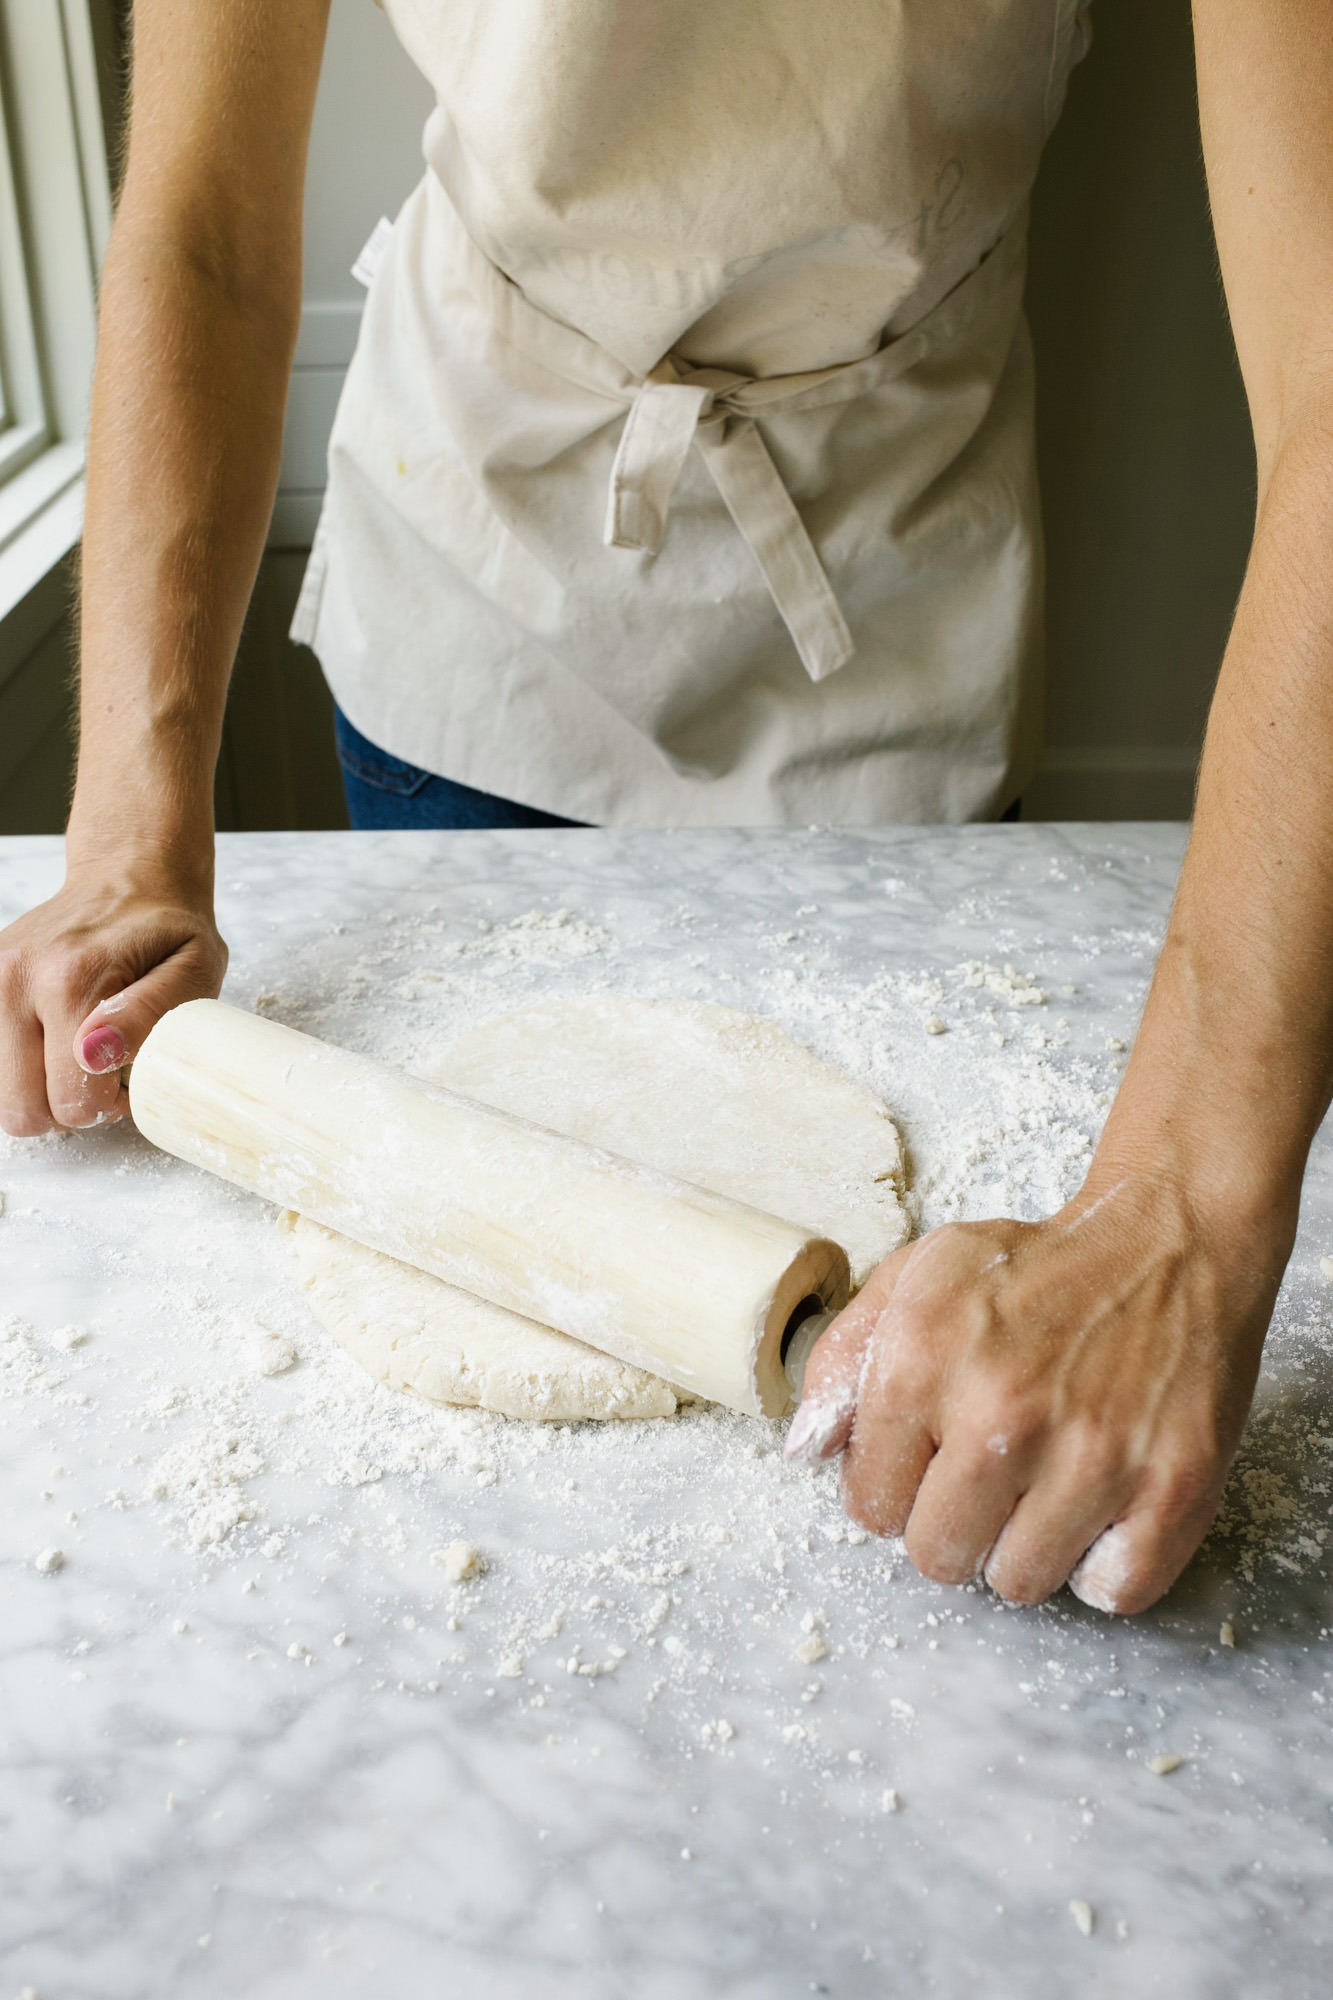 You Need to Know: How to Make Pie Dough. This is a step by step tutorial with photos and videos of how to make, bake, and work with homemade butter pie dough. Learn what fat to use in pie crust, how to make an egg wash, how to crimp a pie crust, how to braid a pie crust lattice, and more tips that make homemade desserts easy. Find all the tips and tricks for great pie crust here on thewoodandspoon.com